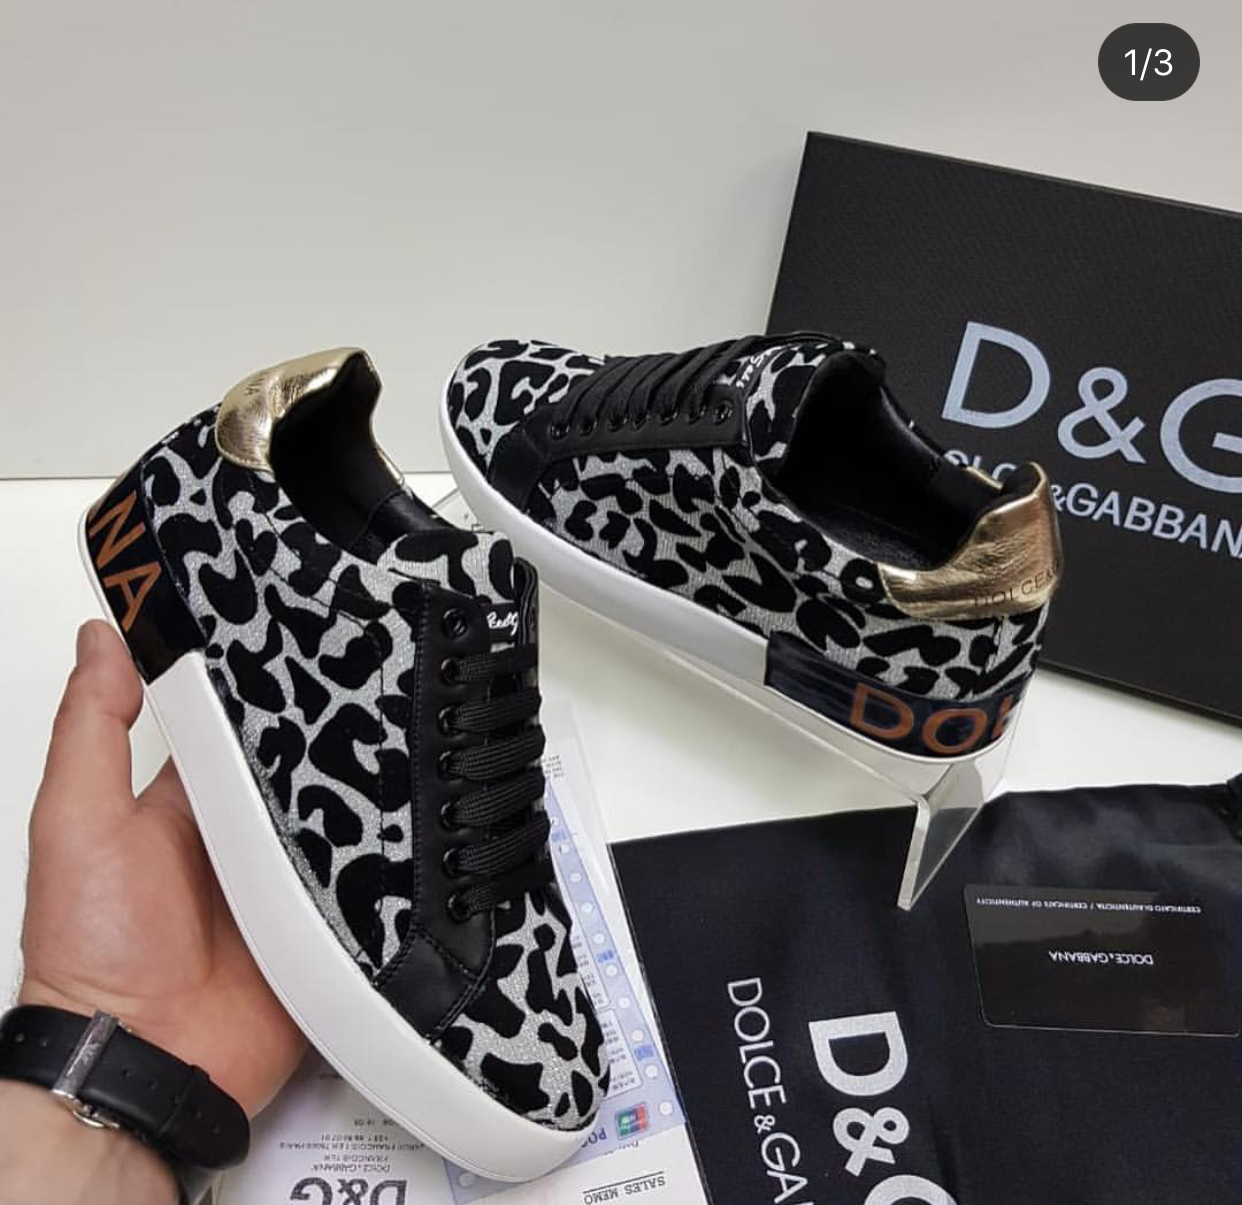 For the online store, I need wholesale brand shoes and clothes, replicas with good quality as Chanel, DG, Gucci, etc.